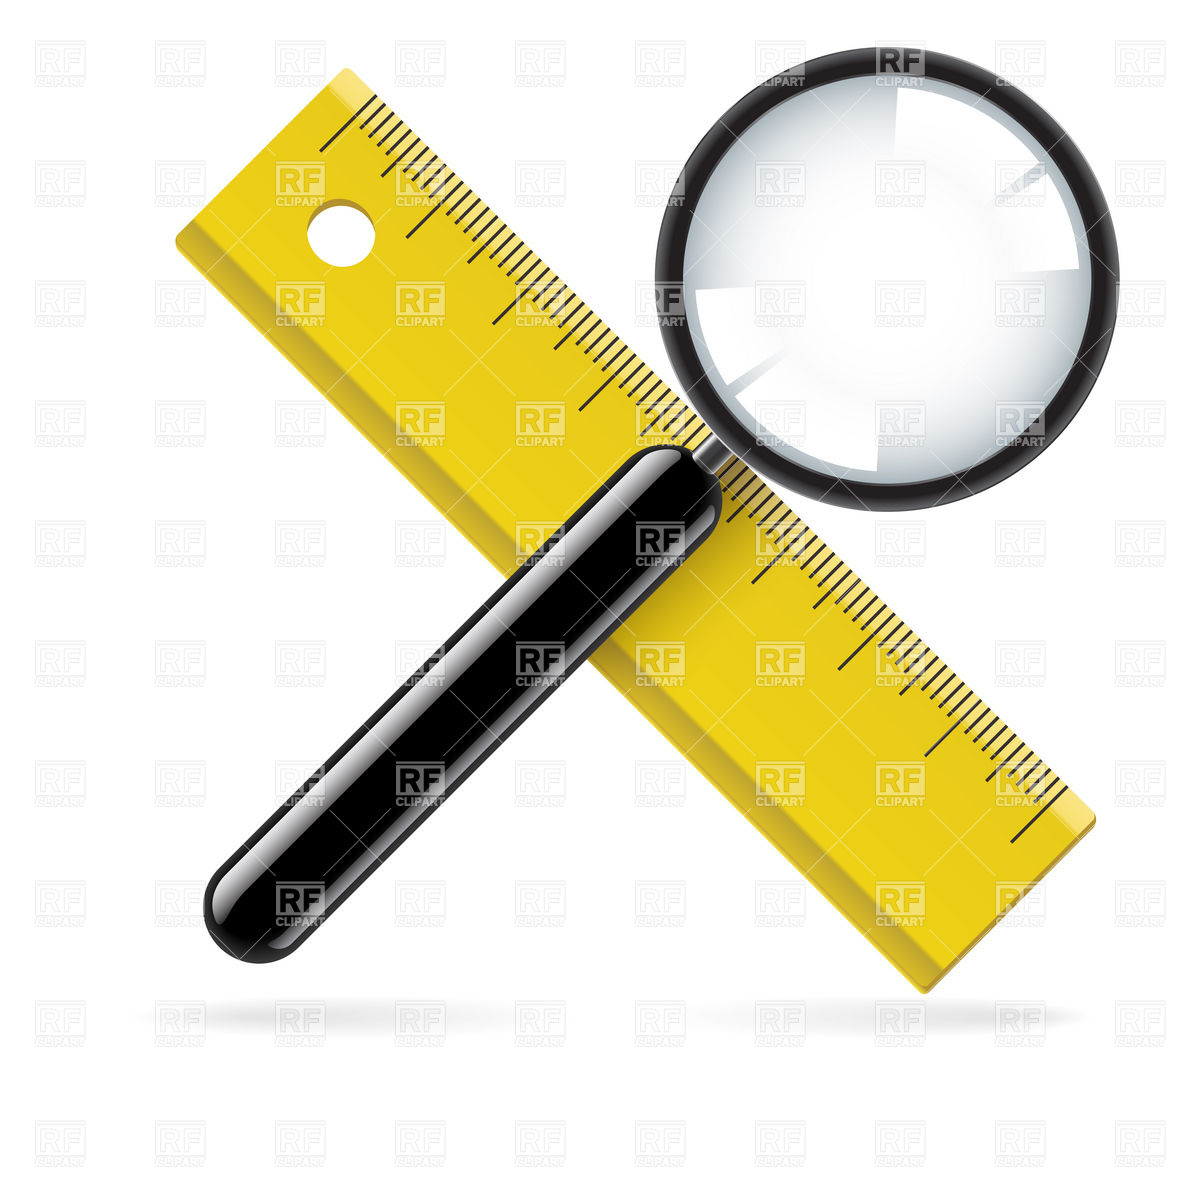 1200x1200 Magnifying Glass And Ruler Royalty Free Vector Clip Art Image